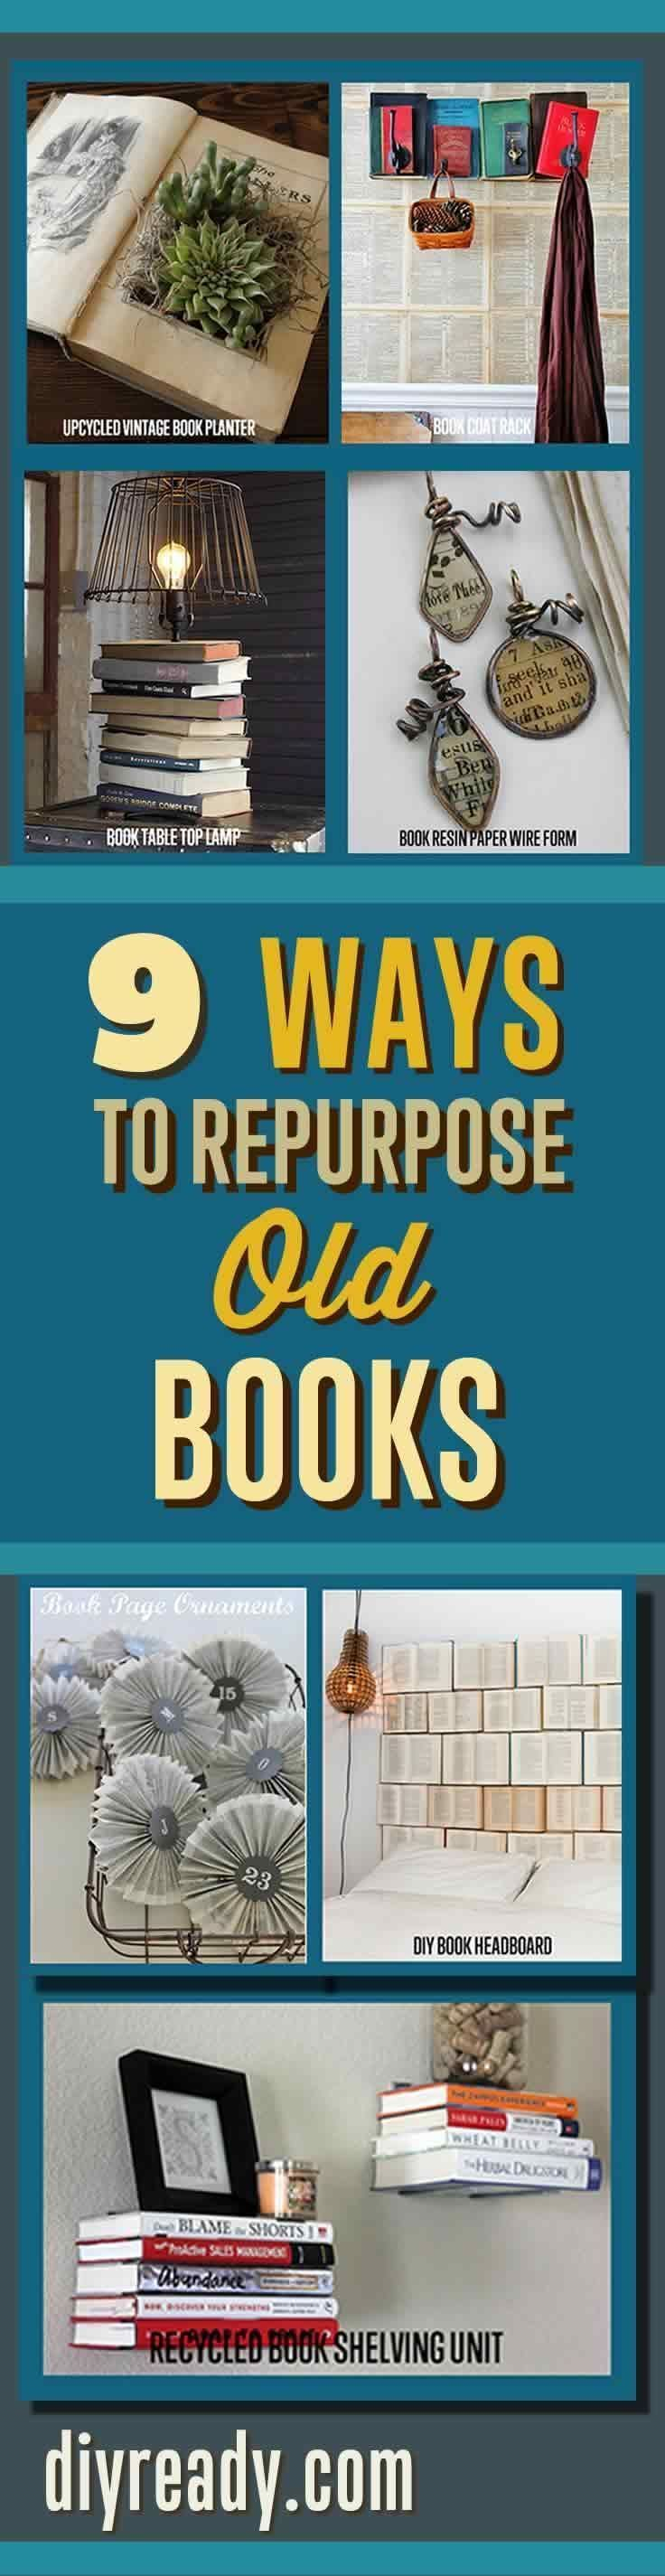 Craft Projects Ideas with Old Books. Repurposed Items can can used to make creative home decor.